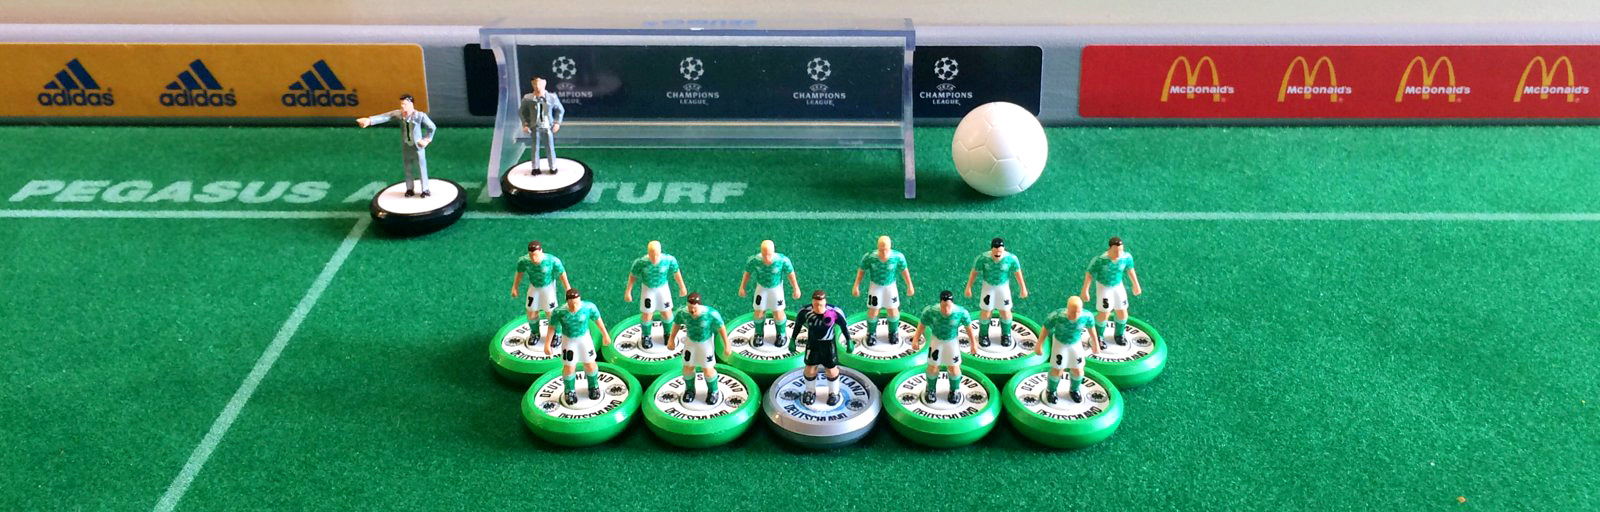 Subbuteo_Gameplay (9)